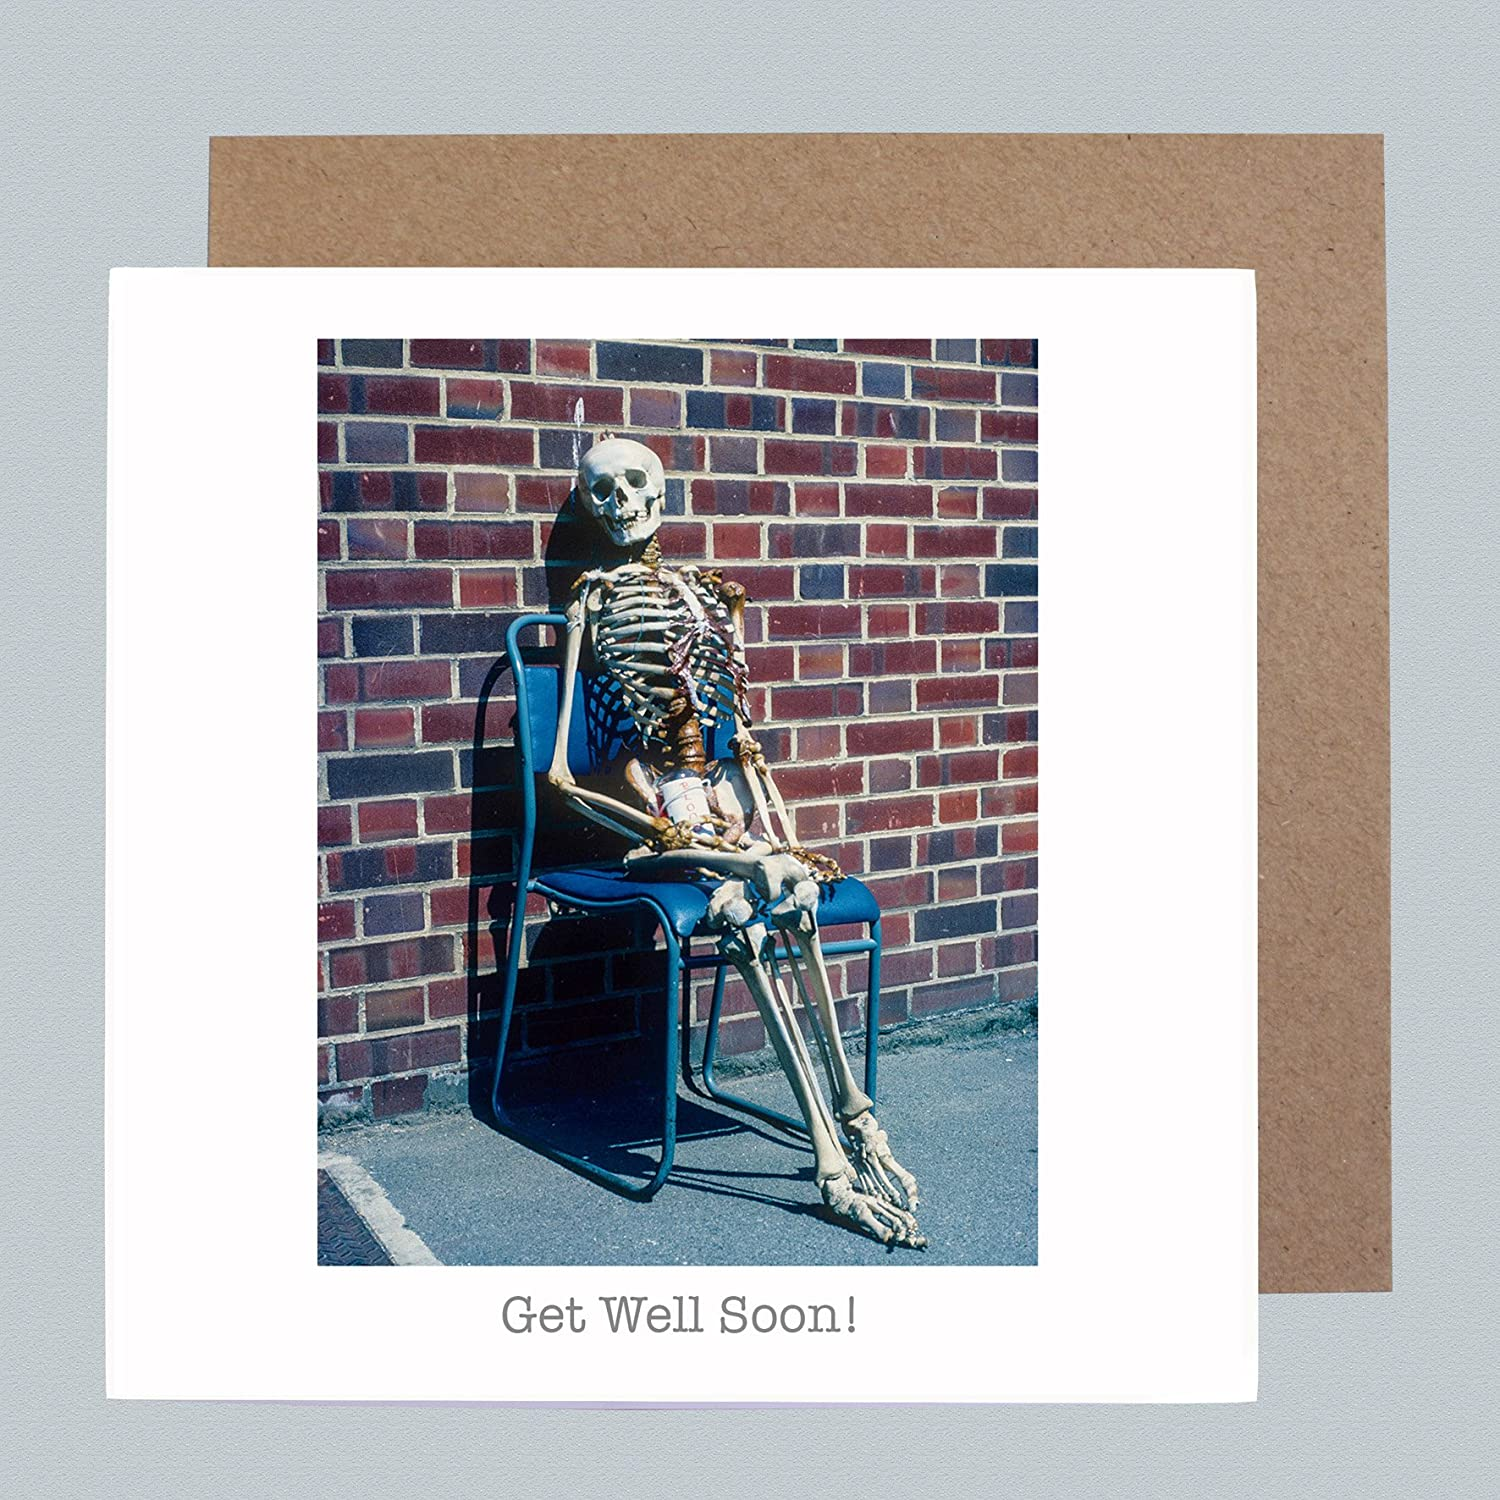 Get Well Soon - Vintage Retro Blank Greeting Card - Funny Humour Get Well Card 1970's by Honovi Cards